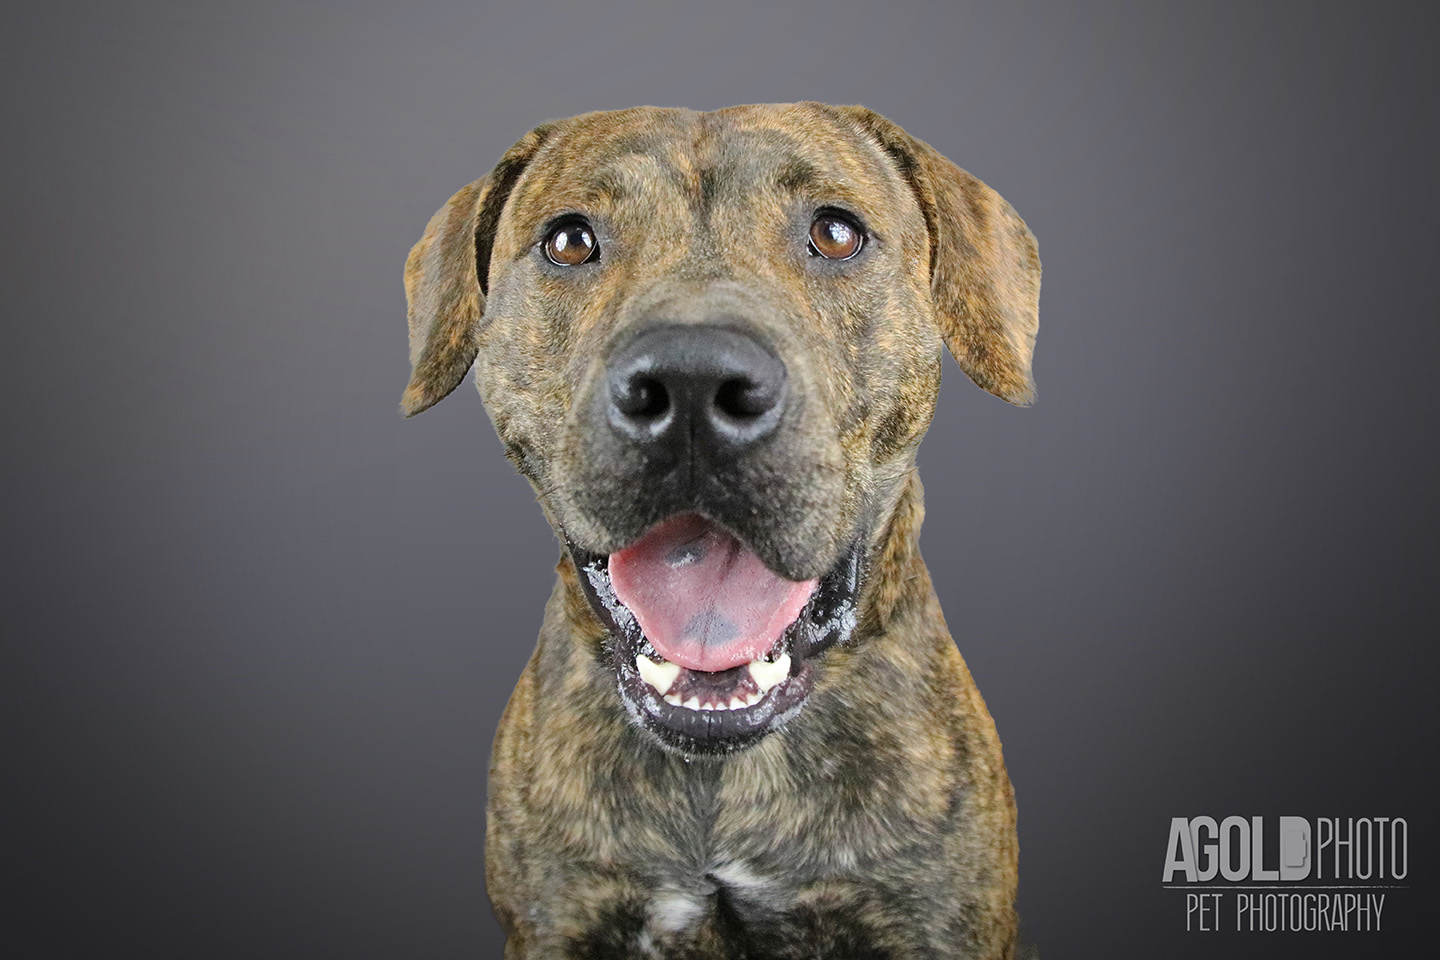 handsome_agoldphoto-tampa-pet-photography__agoldphoto-tampa-pet-photography_